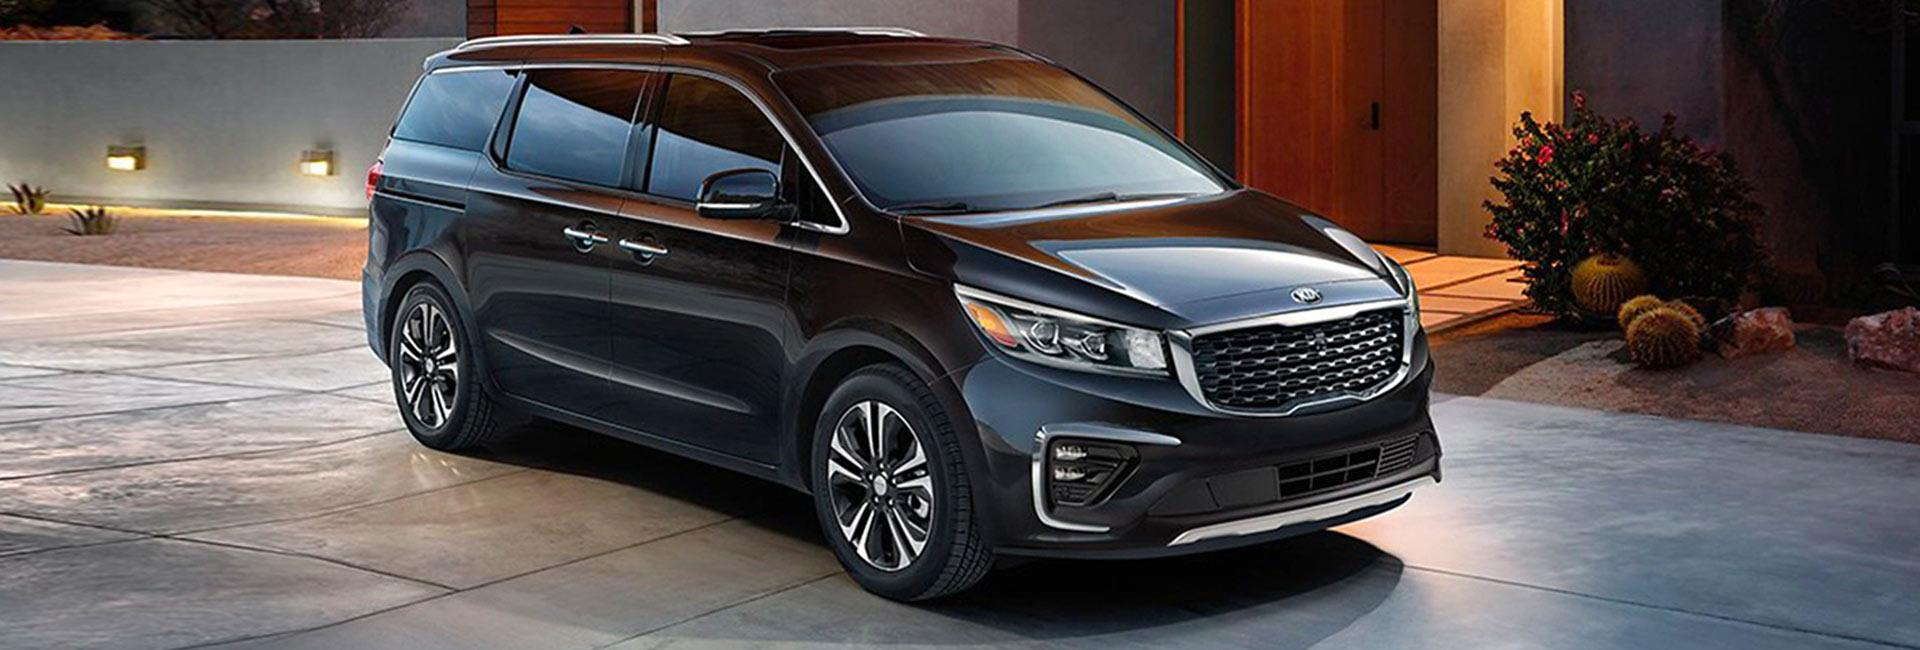 Picture of the new 2020 Kia Sedona in Cleveland